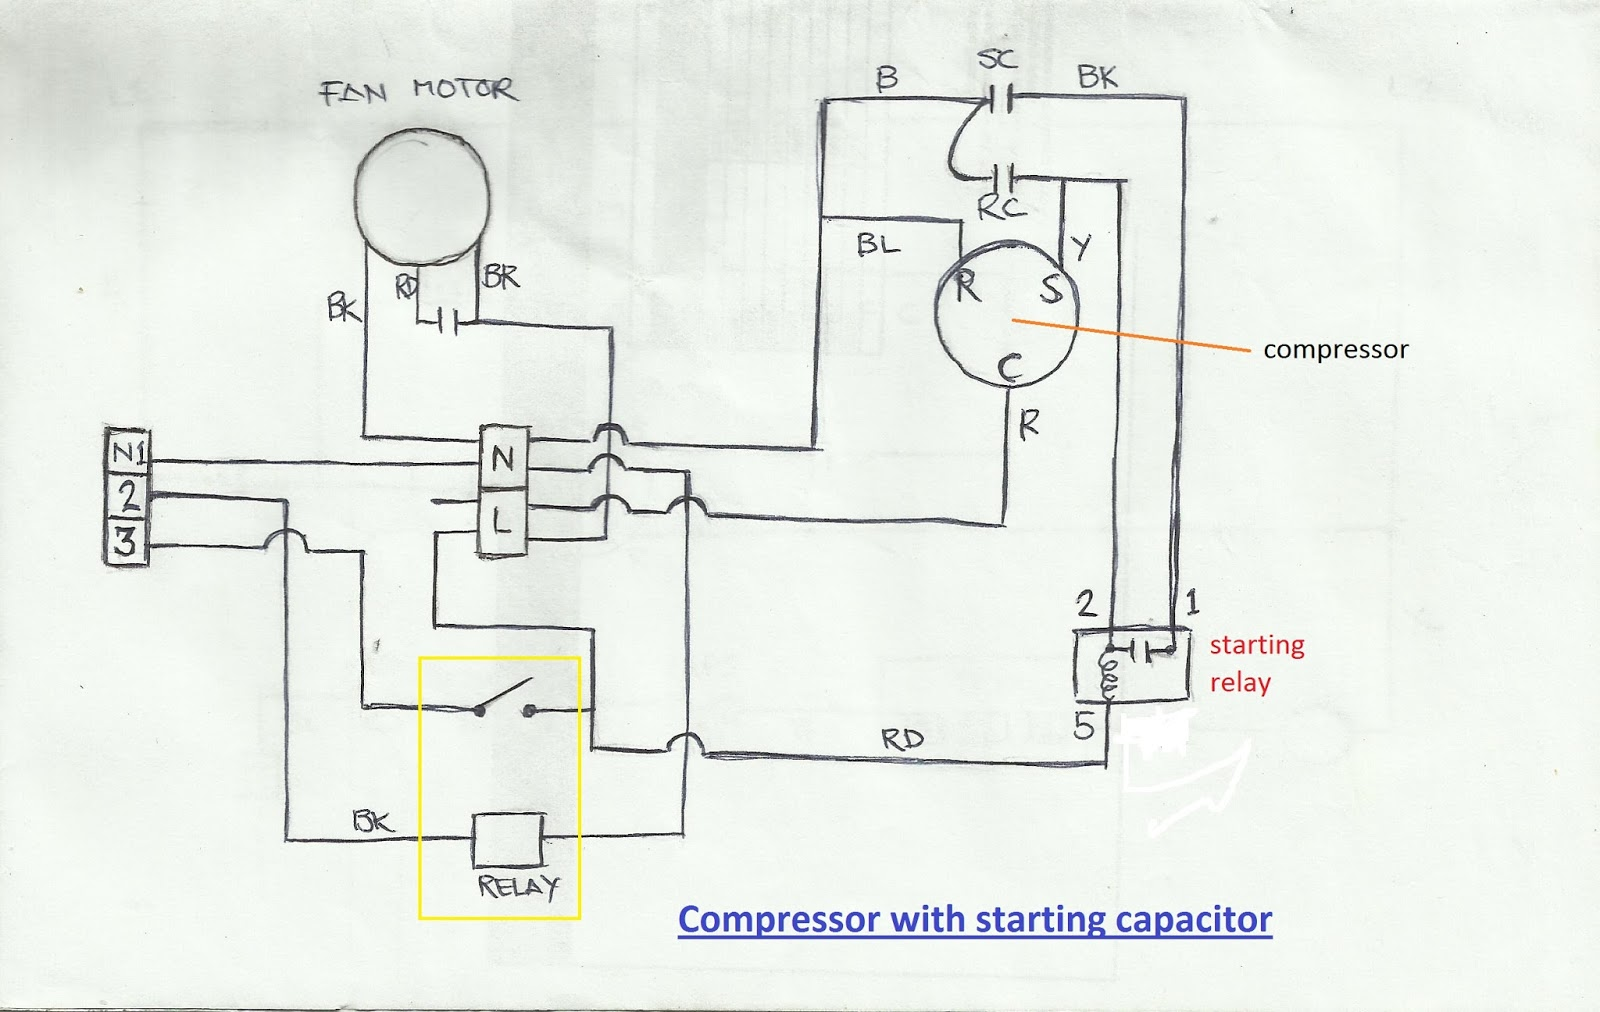 18 Clic Air Compressor Wiring Diagram For on heater for air compressor, regulator for air compressor, circuit for air compressor, manual for air compressor, clutch for air compressor, switch for air compressor, schematic for air compressor, 220 volt air compressor, starter for air compressor, accessories for air compressor, tools for air compressor, oil cooler for air compressor, piston for air compressor, wheels for air compressor, remote control for air compressor, engine for air compressor, capacitor for air compressor, battery for air compressor, cover for air compressor, parts for air compressor,